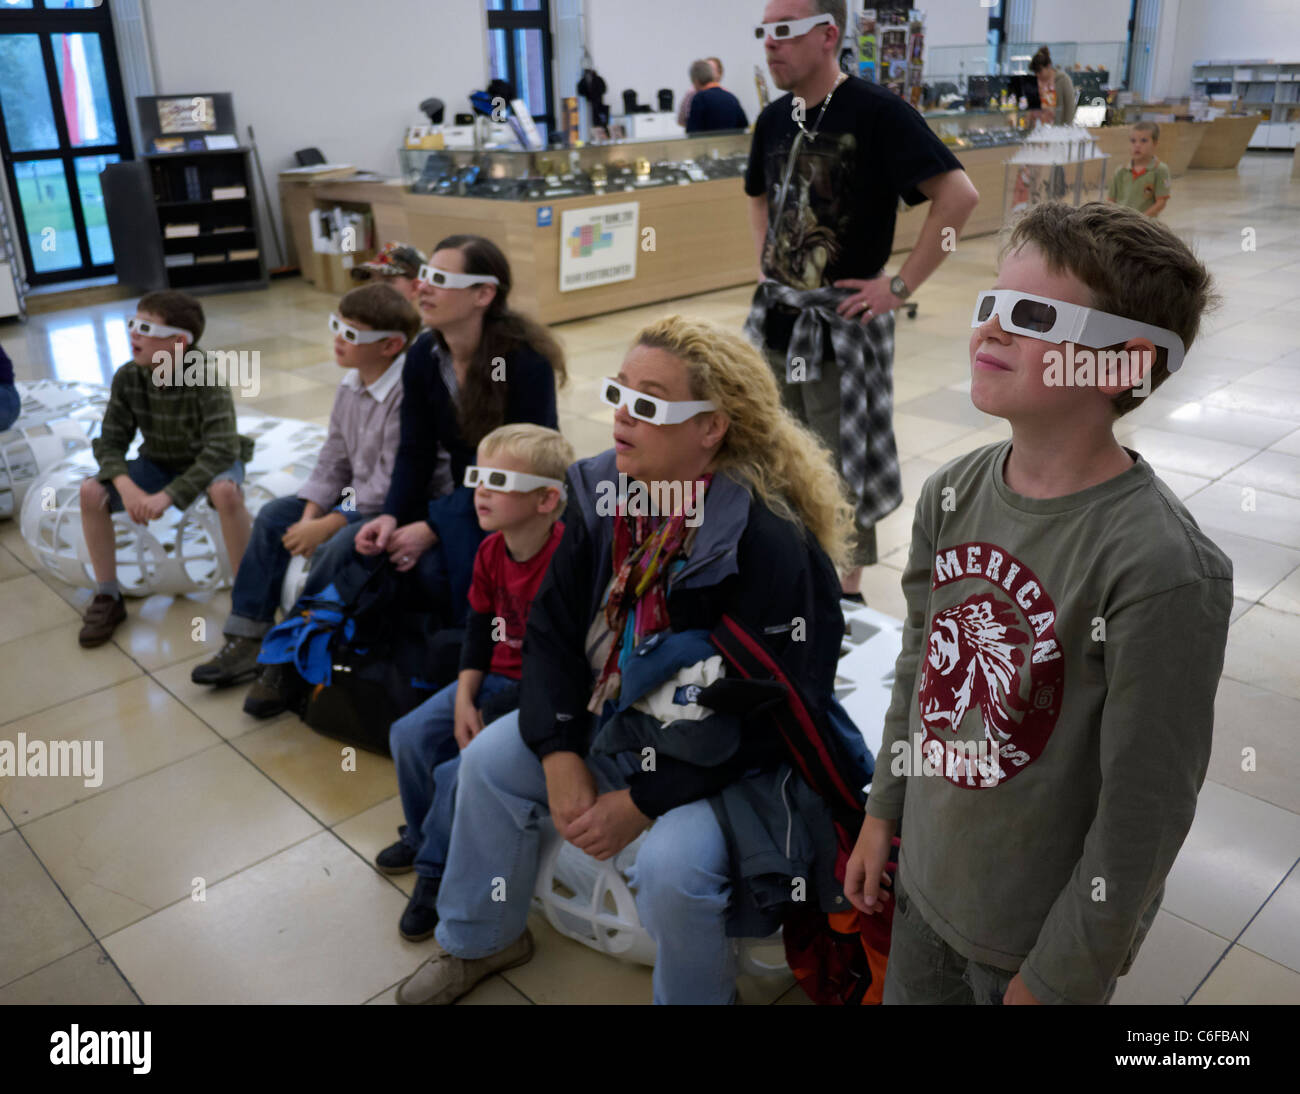 Visitors watch 3D film with 3D glasses at the Deutsches Bergbau-Museum or German Mining Museum in Bochum Germany - Stock Image